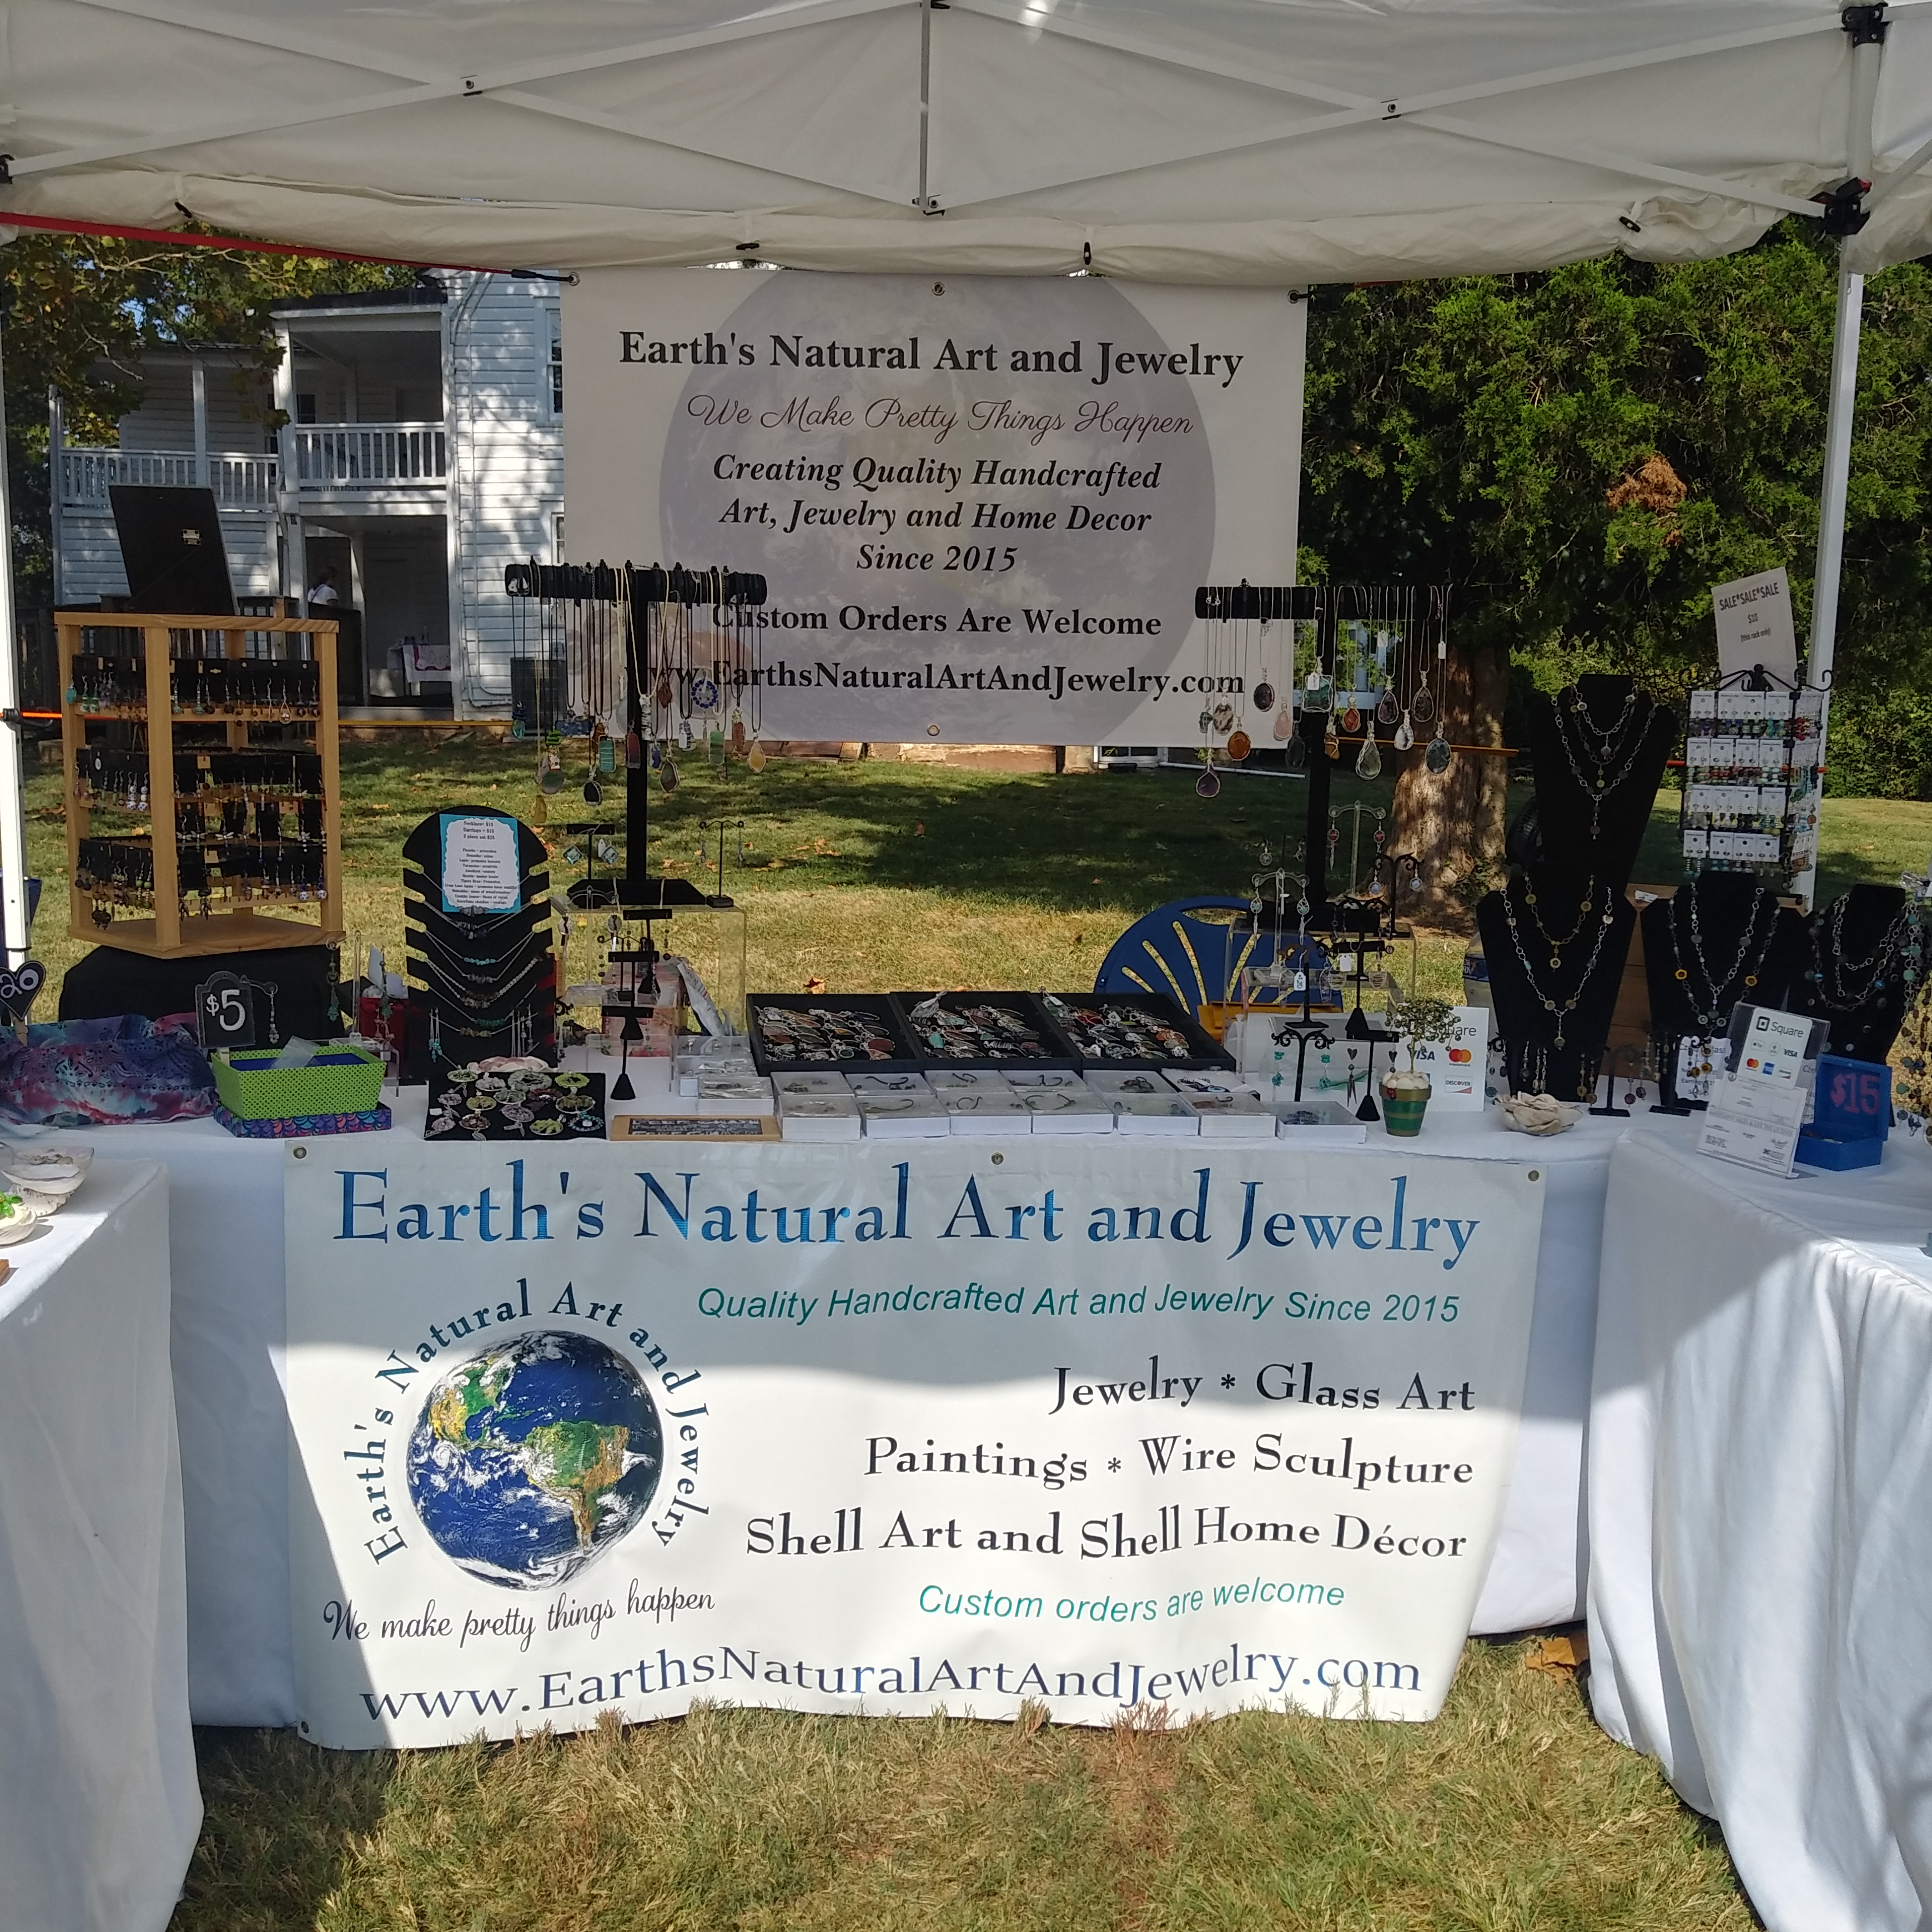 Earth's Natural Art and Jewelry 2019